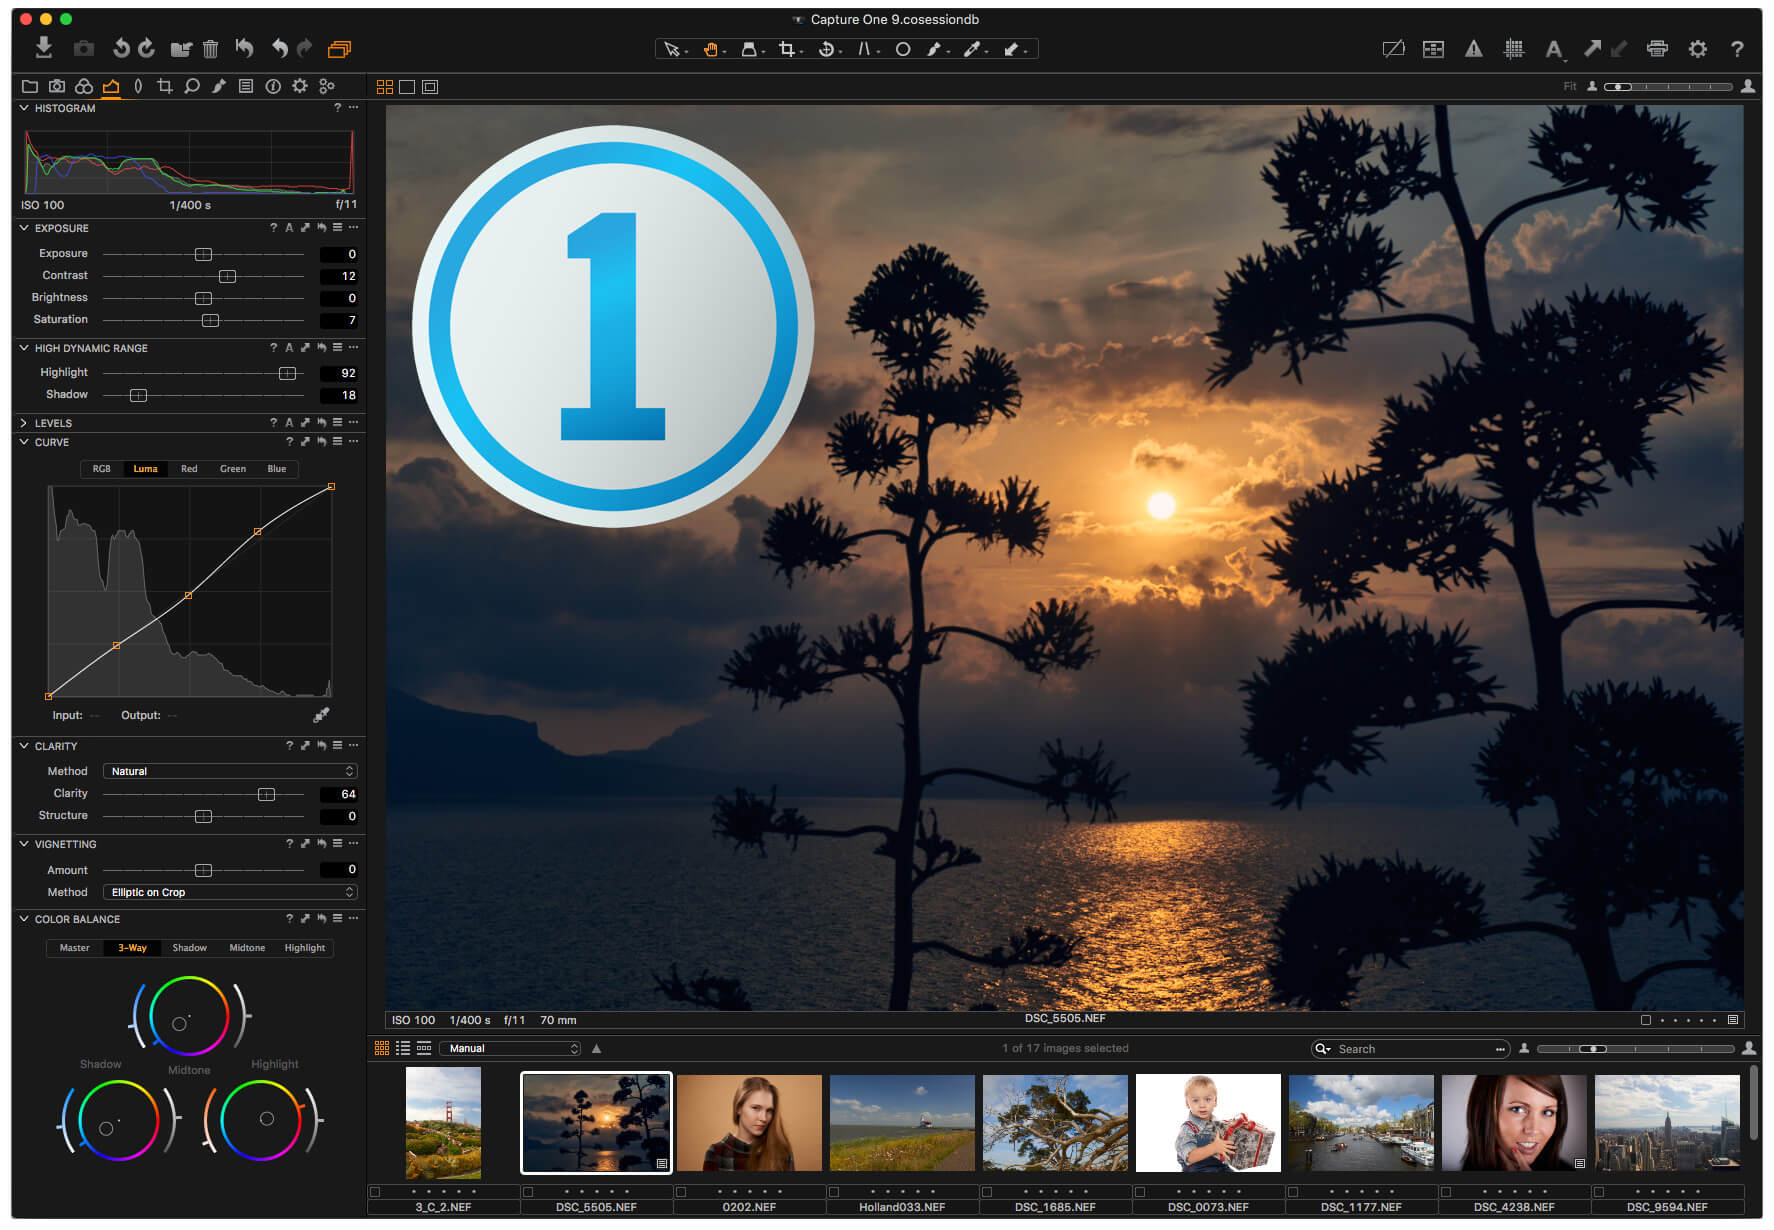 capture one pro 10.1.2 crack